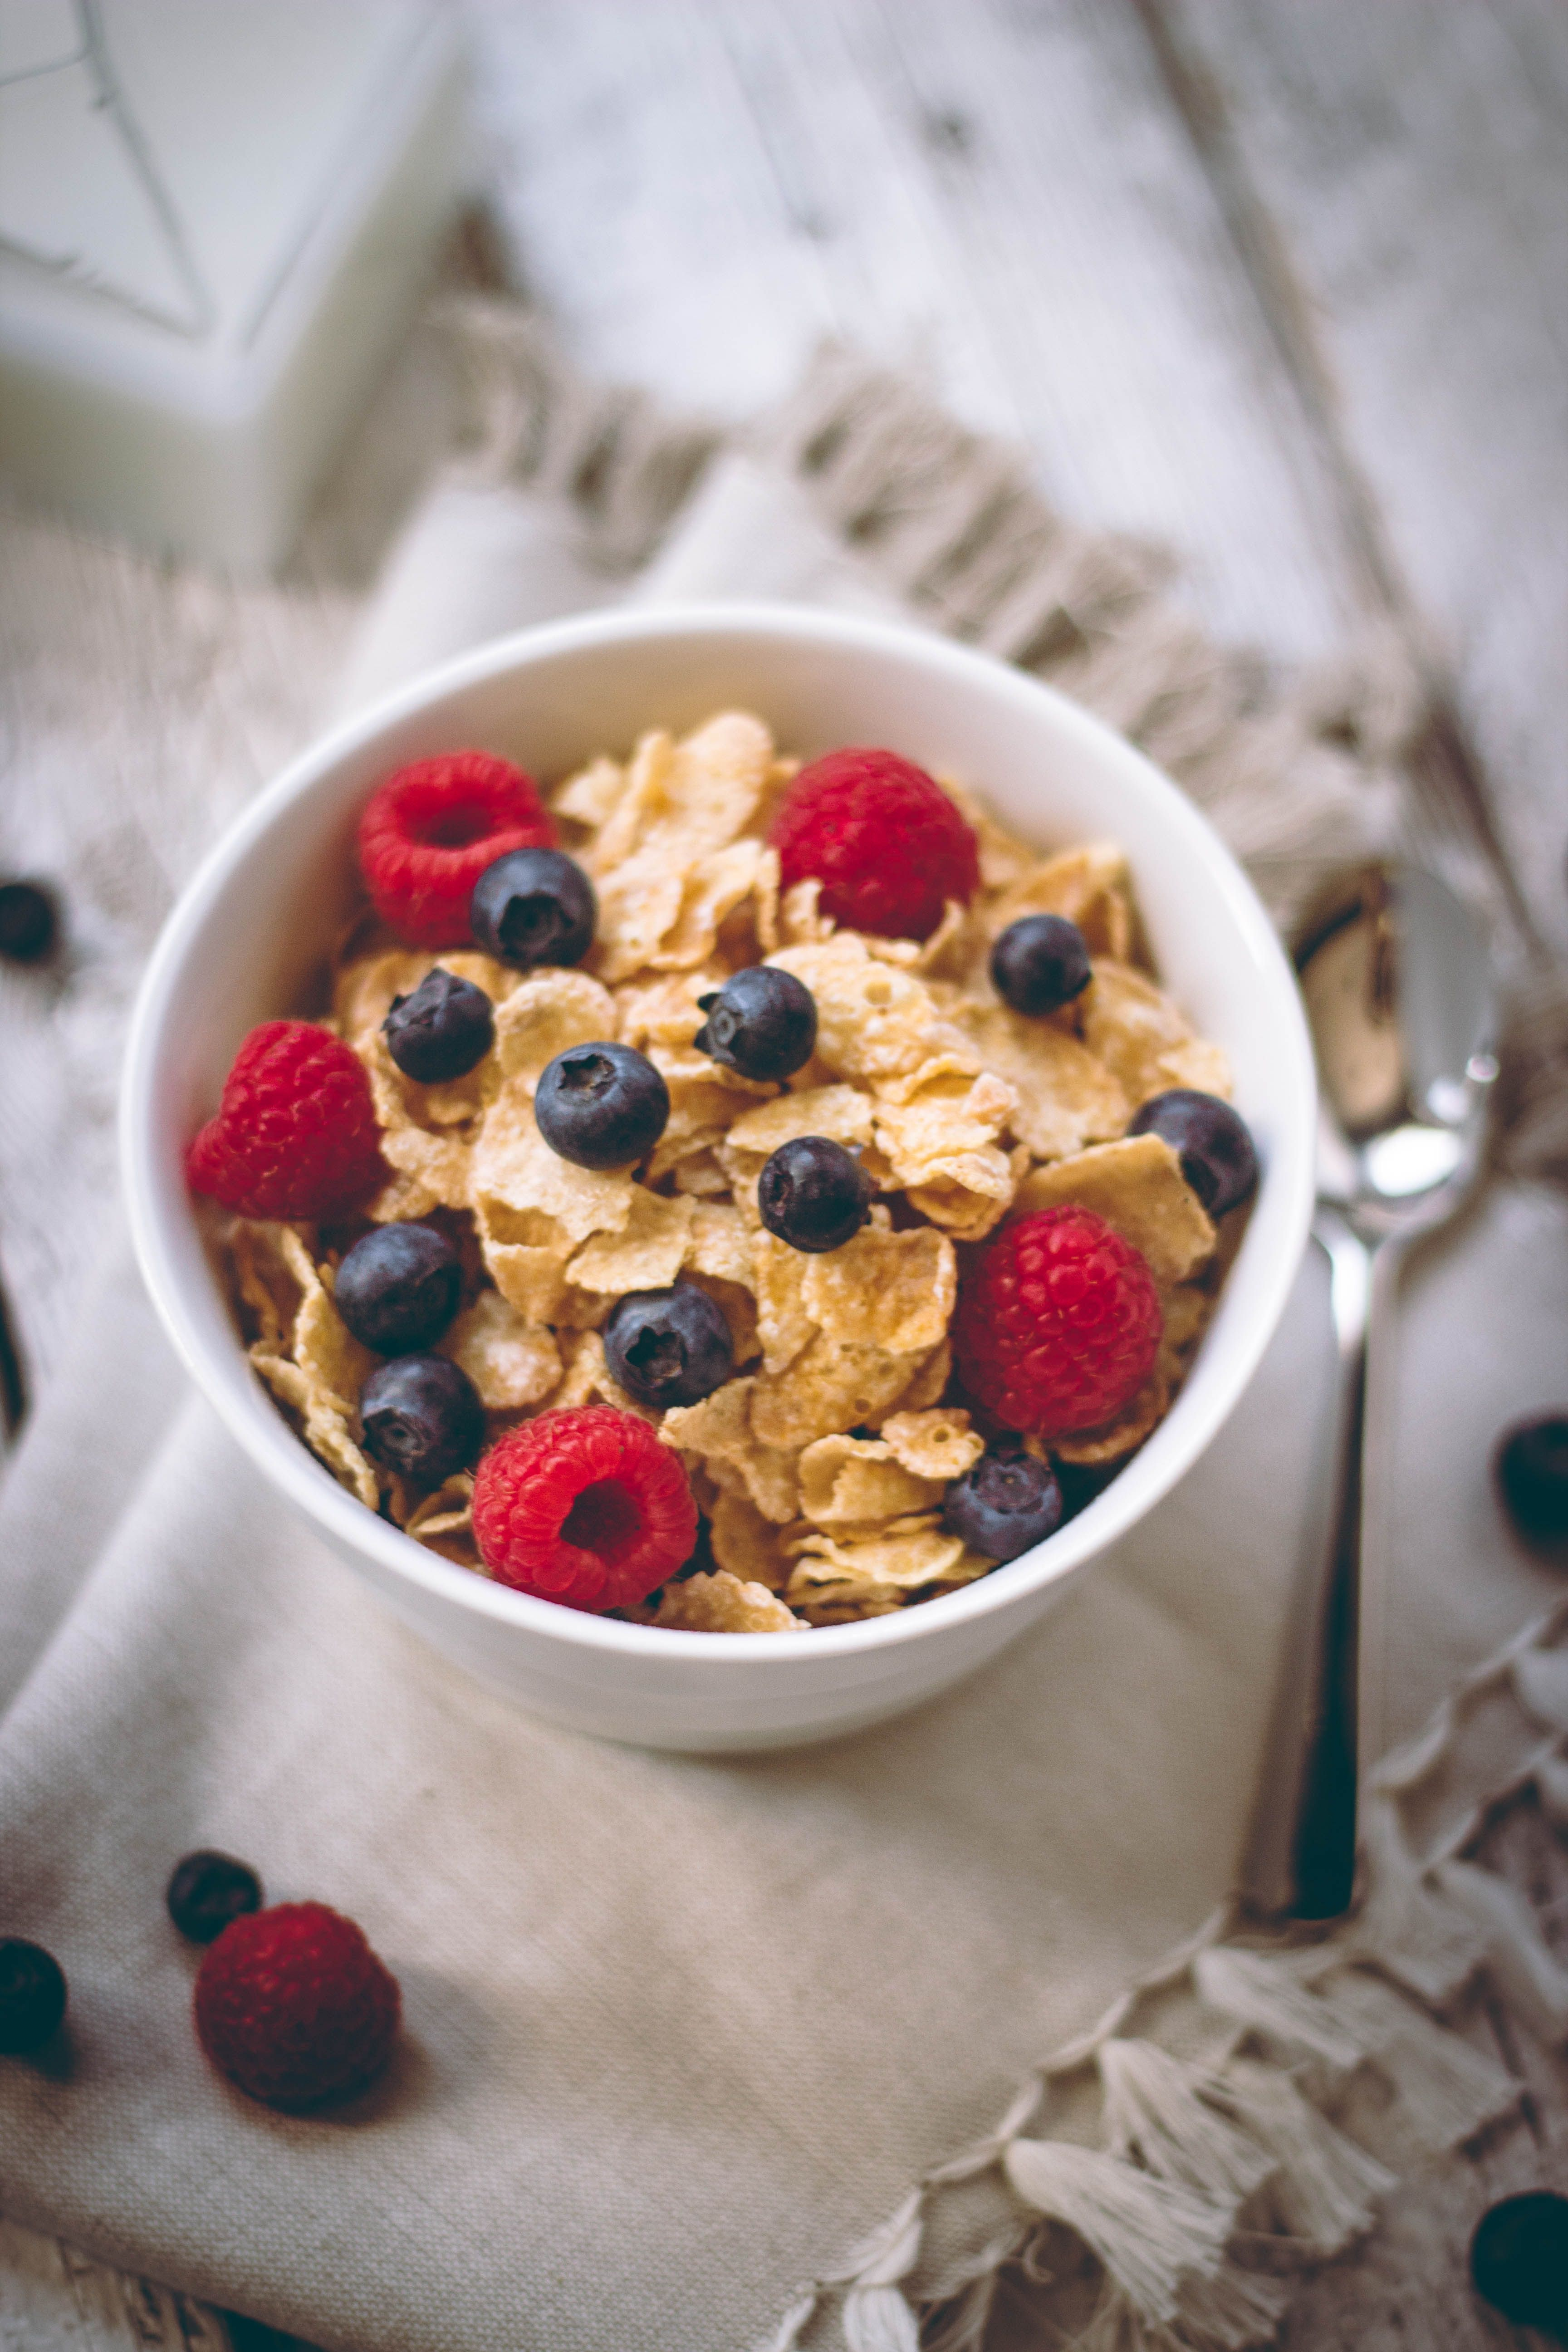 """<p>Even if it's a hearty, healthy version, cold cereal isn't going to keep you full for very long because there's not a lot of water content. """"<a href=""""http://ajcn.nutrition.org/content/70/4/448.full"""">Studies show</a> that when water is incorporated into a food, it's going to fill you up more than food with a lower water content,"""" says <a href=""""https://dawnjacksonblatner.com/"""">Dawn Jackson Blatner</a>, RD, author of <em>The Superfood Swap Diet</em>. """"Think about holding a box of dry cereal—it's super light. You can probably eat most of the box in one sitting,"""" she explains. Sure, you're going to get whole grains, fiber, and vitamins, just as the box claims, but you're not going to feel full for very long. </p><p>A better idea: Focus on foods with high-water content, like cooked oatmeal or overnight oats, which have been soaked in water or almond milk overnight.</p>"""